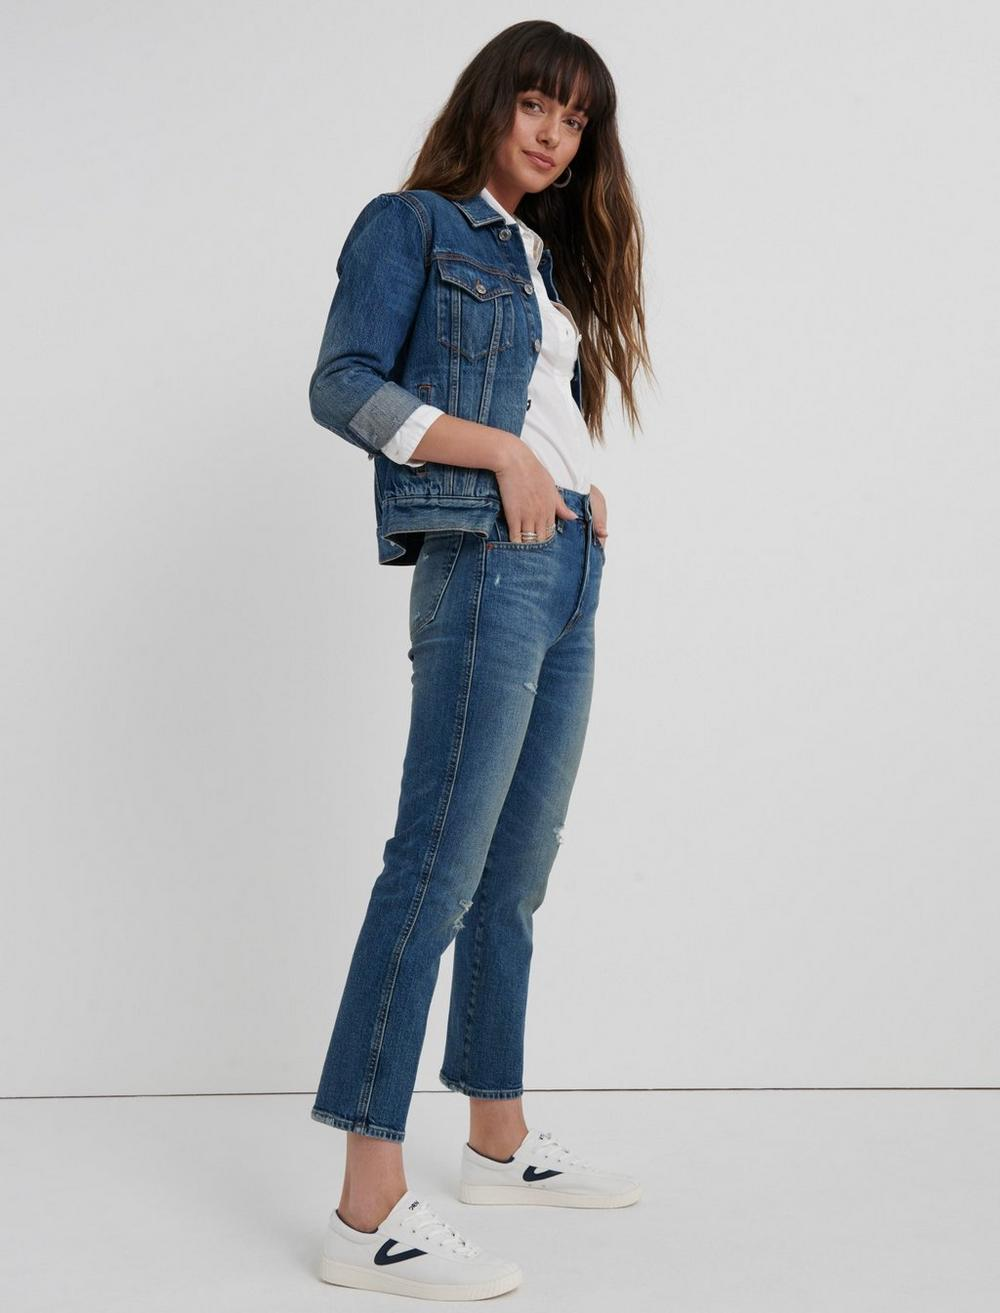 MID RISE AUTHENTIC STRAIGHT CROP JEAN, image 2